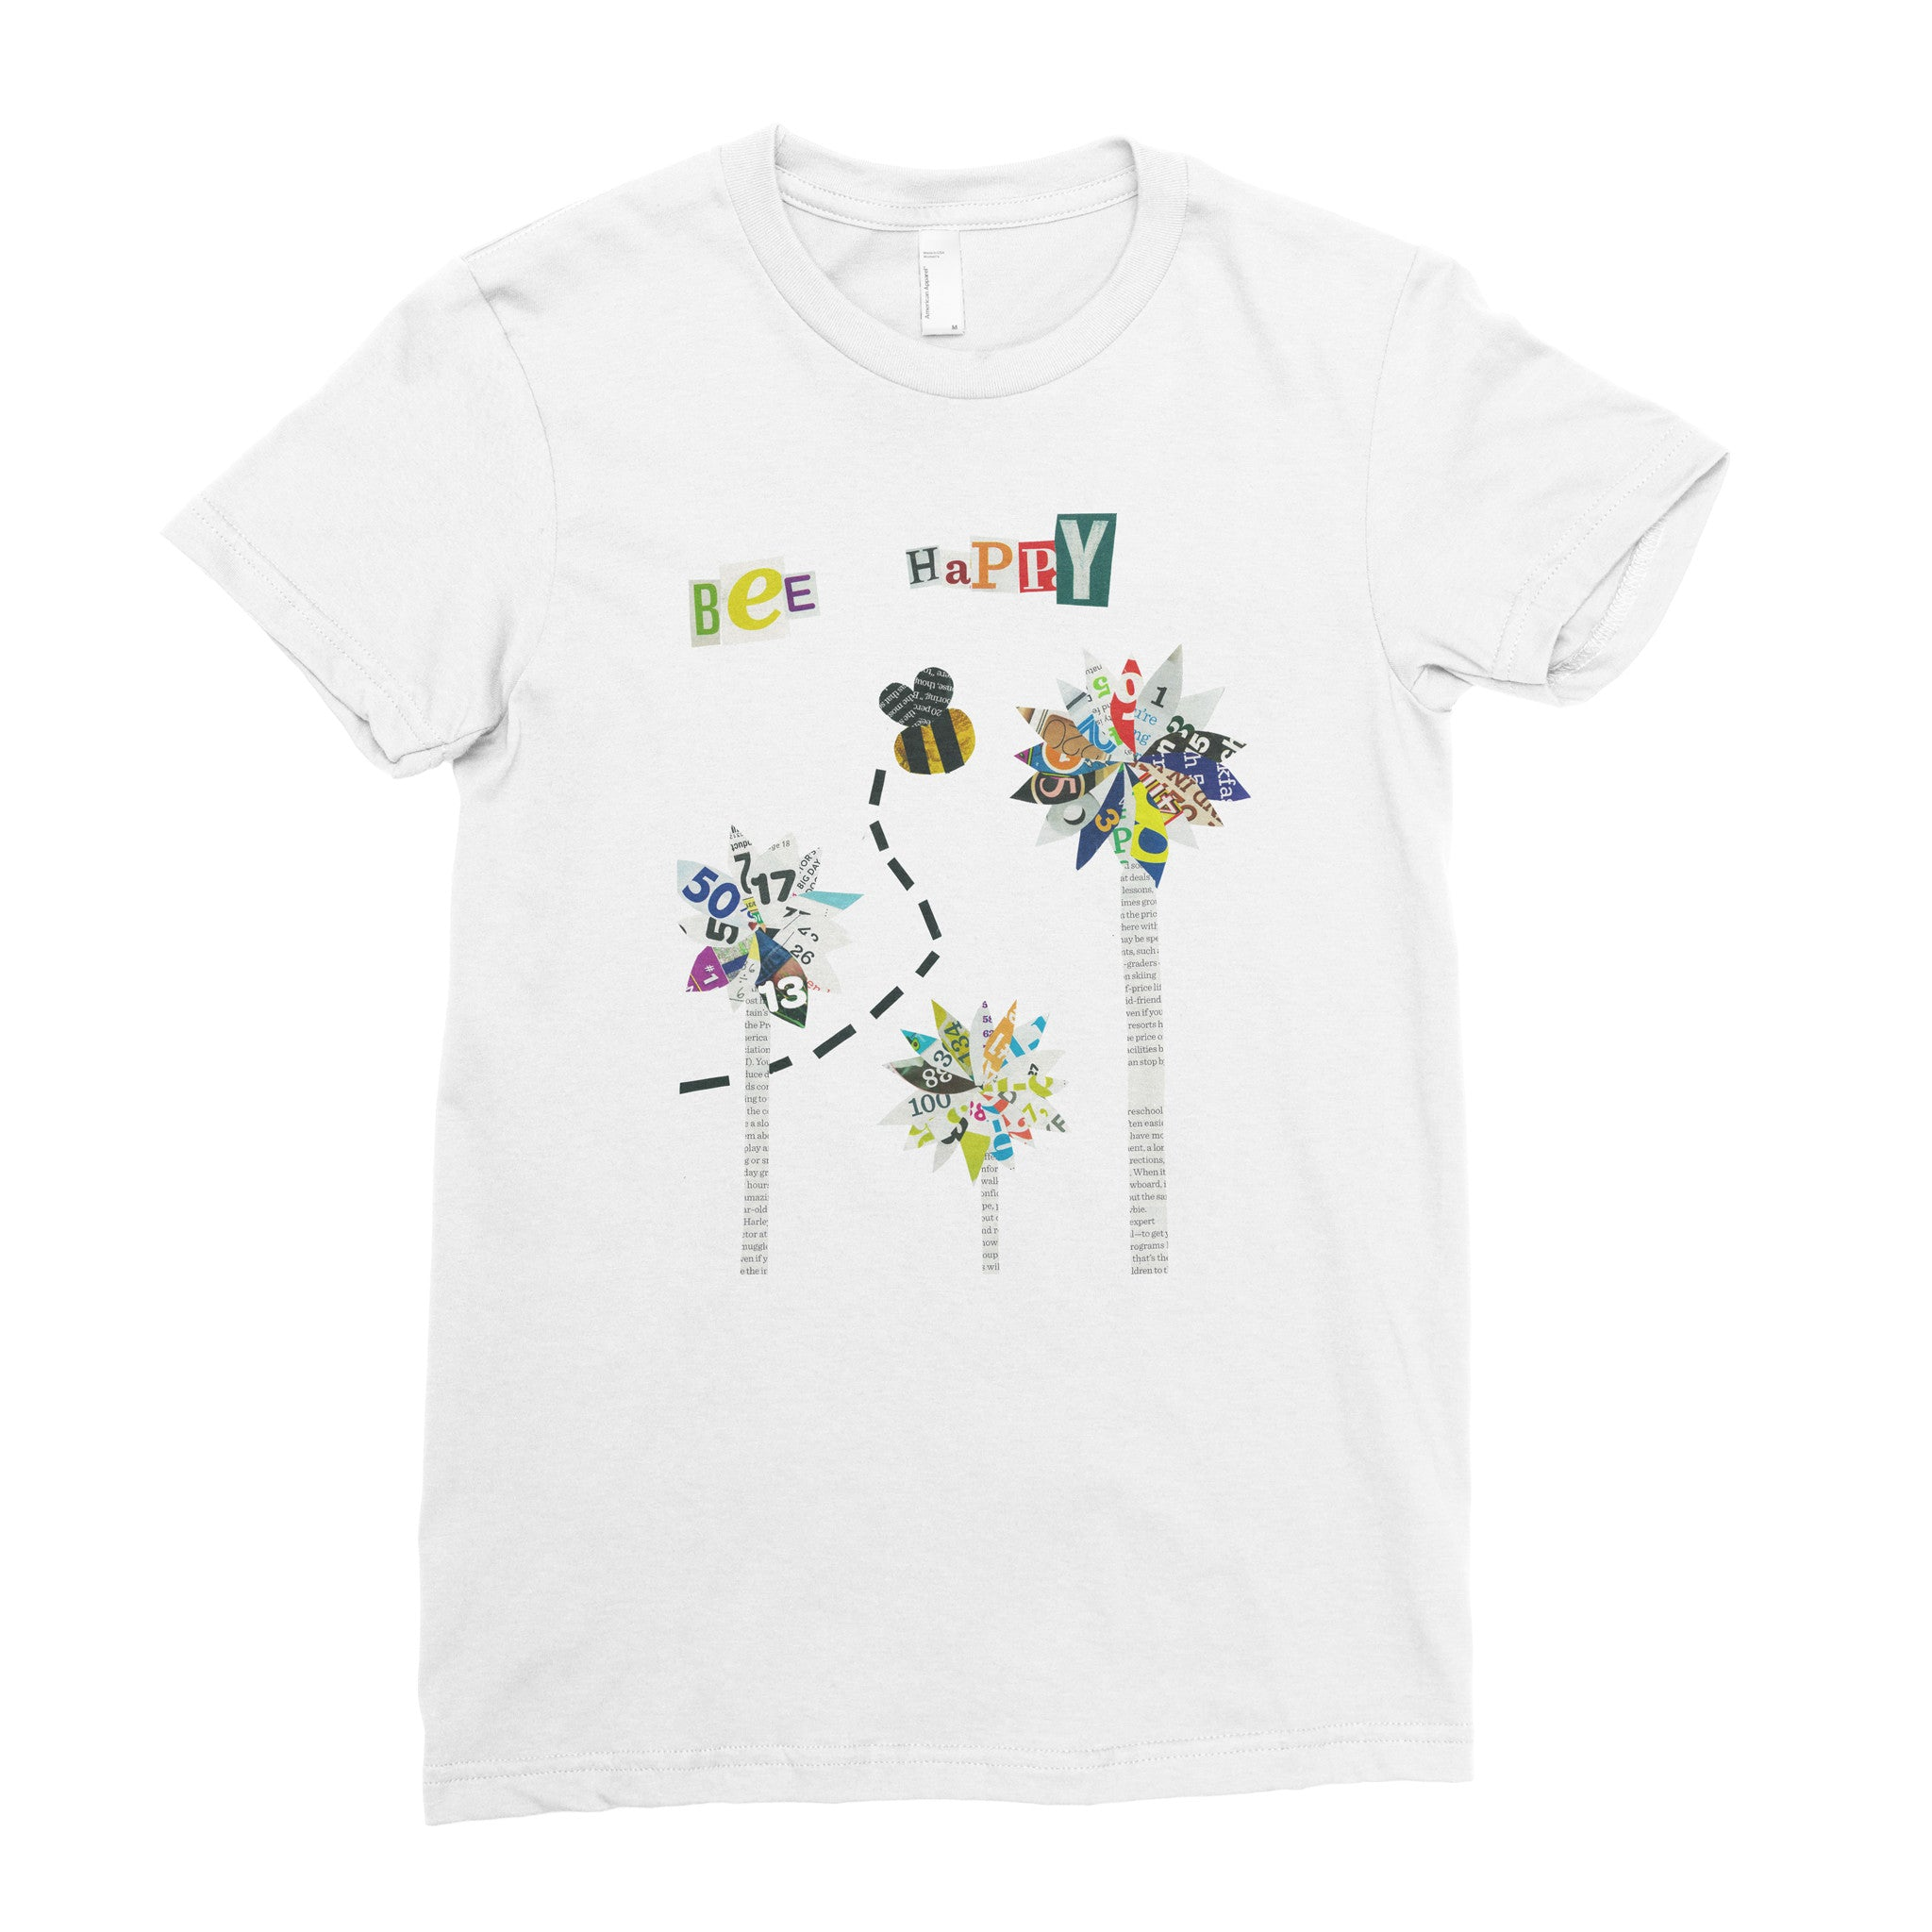 Talia, 8th grade - Adult T-shirt - Rightside Shirts